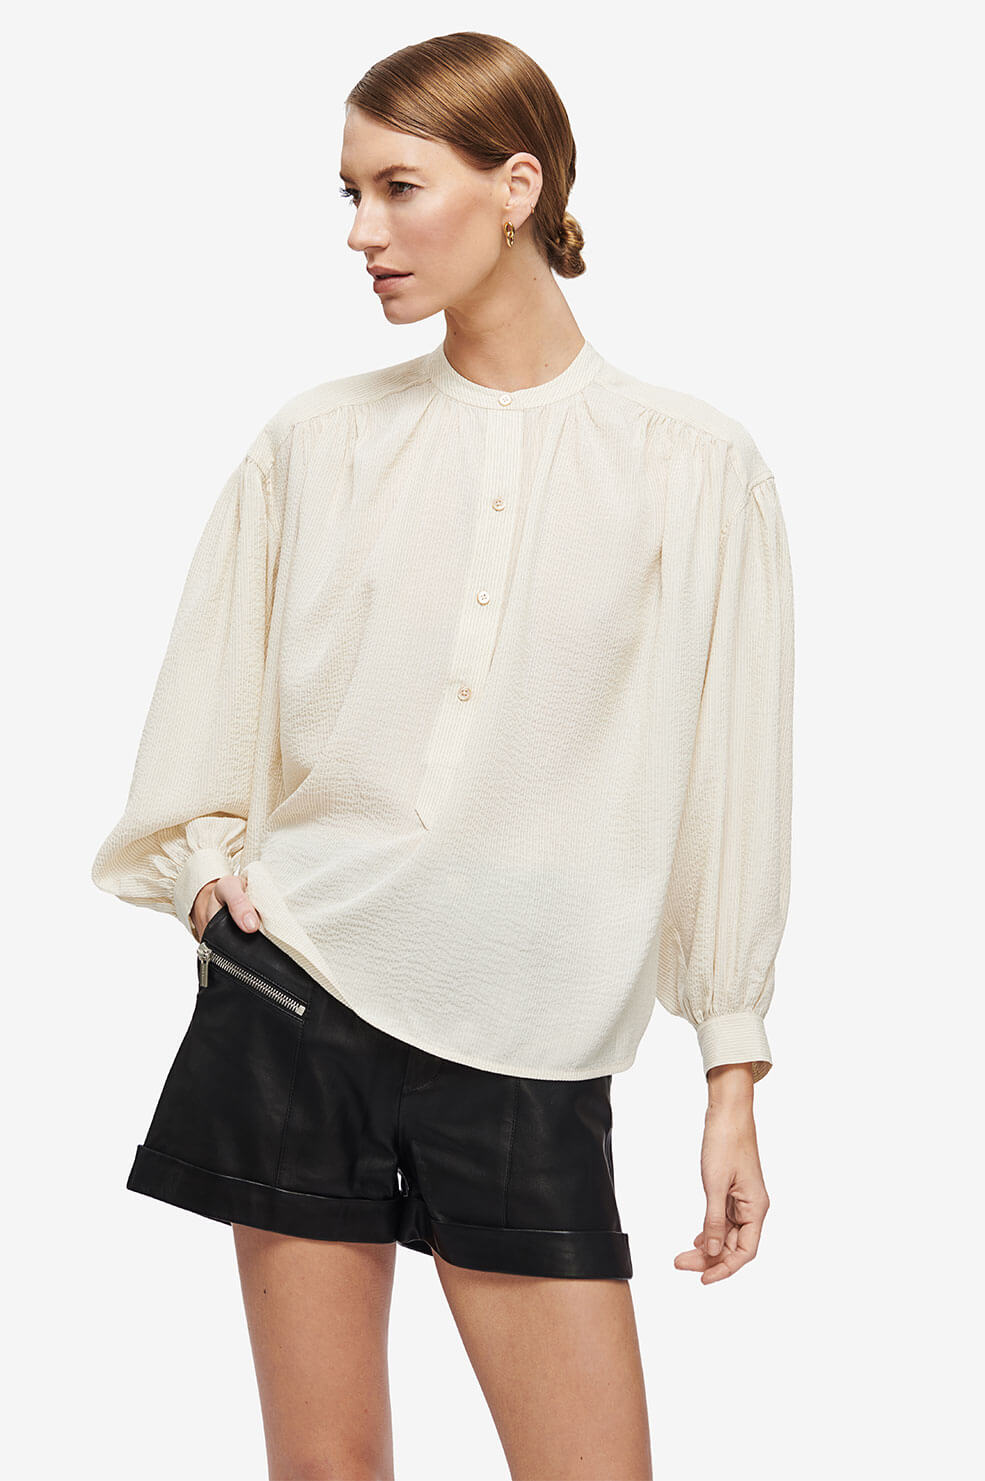 Eden Shirt - Cream and Black Stripe